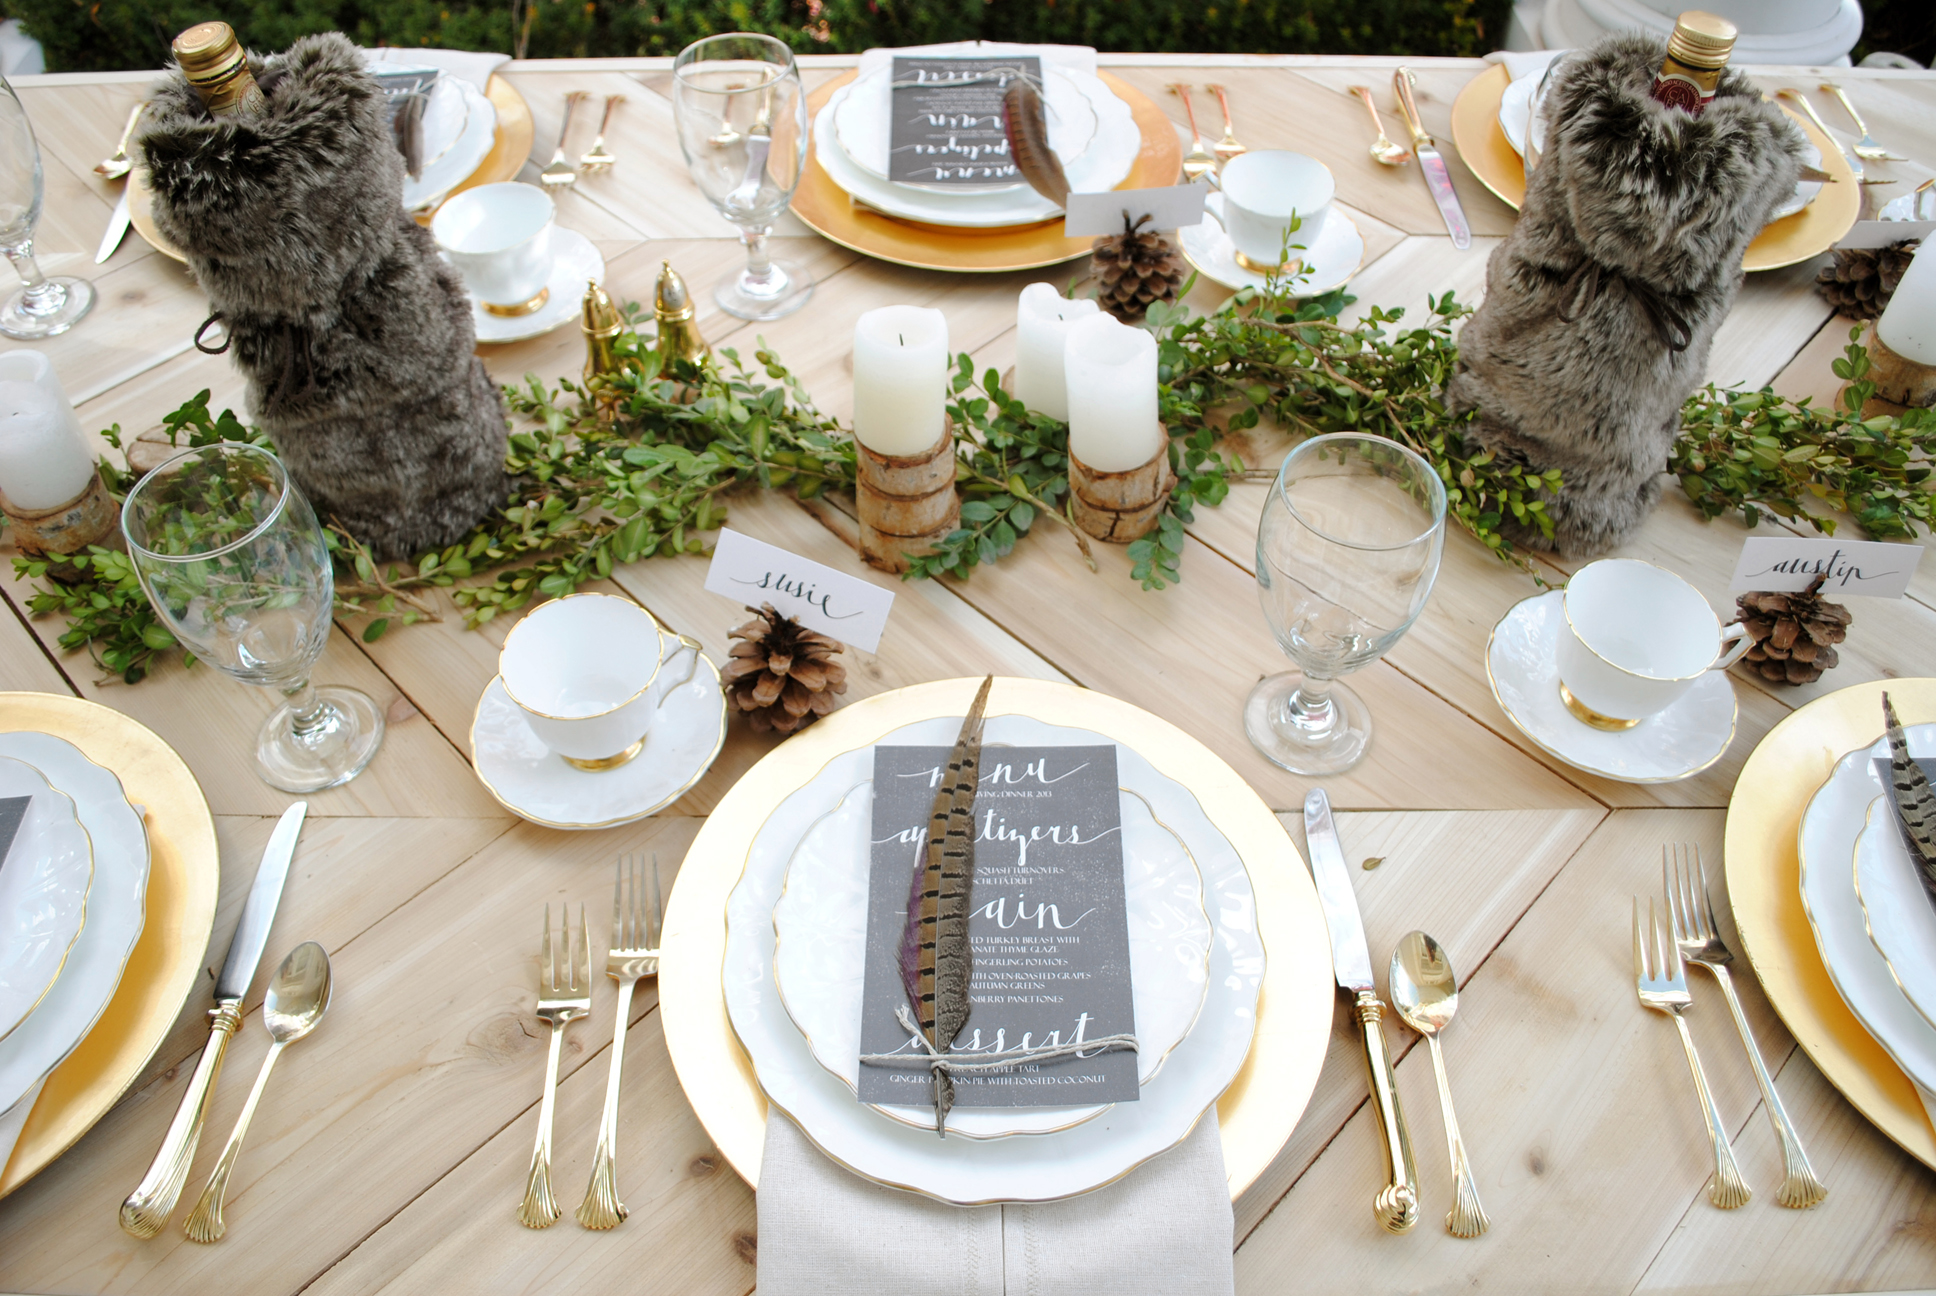 Looking for thanksgiving tablescape ideas? Here are 50 nature inspired Thanksgiving tablescapes filled with beautiful rustic elements. upcycledtreasures.com